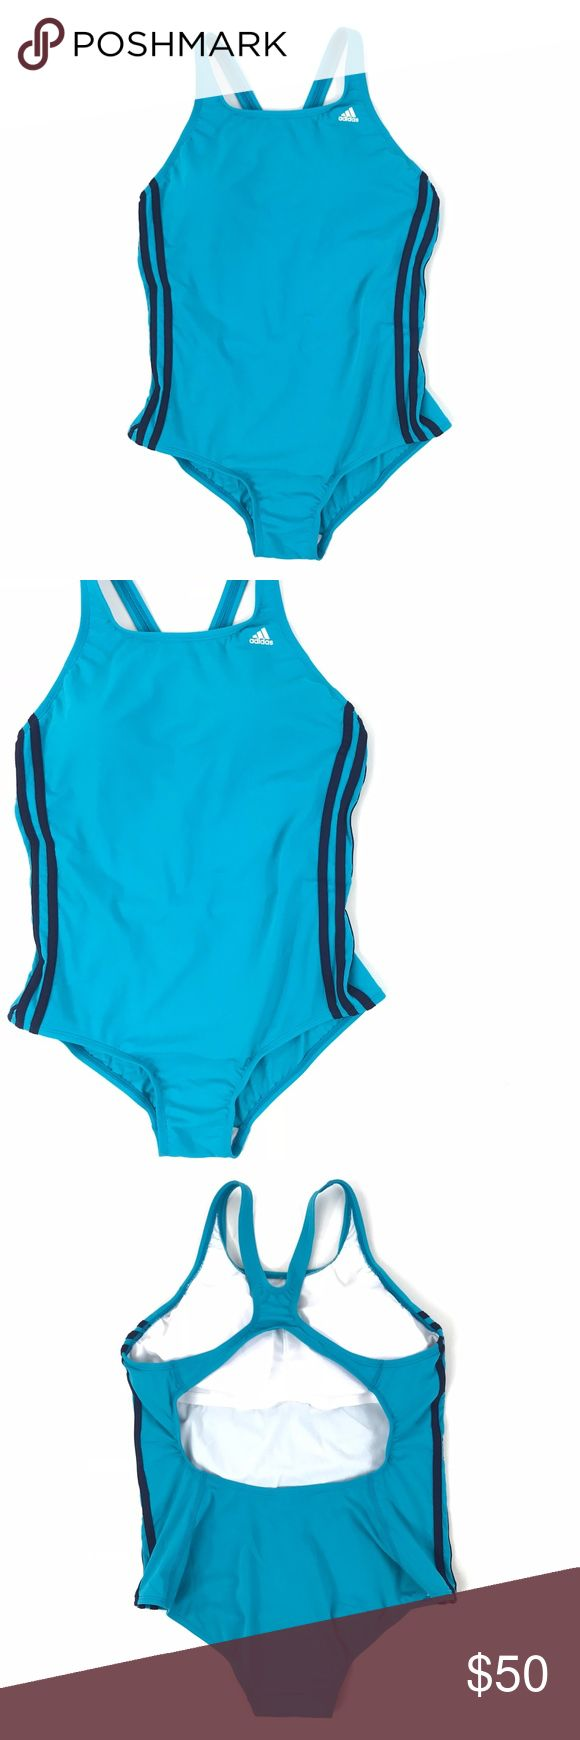 Adidas Shock Mint Stripe One-Piece Swimsuit Adidas Womens Sz 14 Shock Mint 3 Stripe One-Piece Swimsuit Racerback Padded Bust  New with tag! Brand new and color  Color - Shock Mint Material - 100% Polyester Size - 14 adidas Swim One Pieces